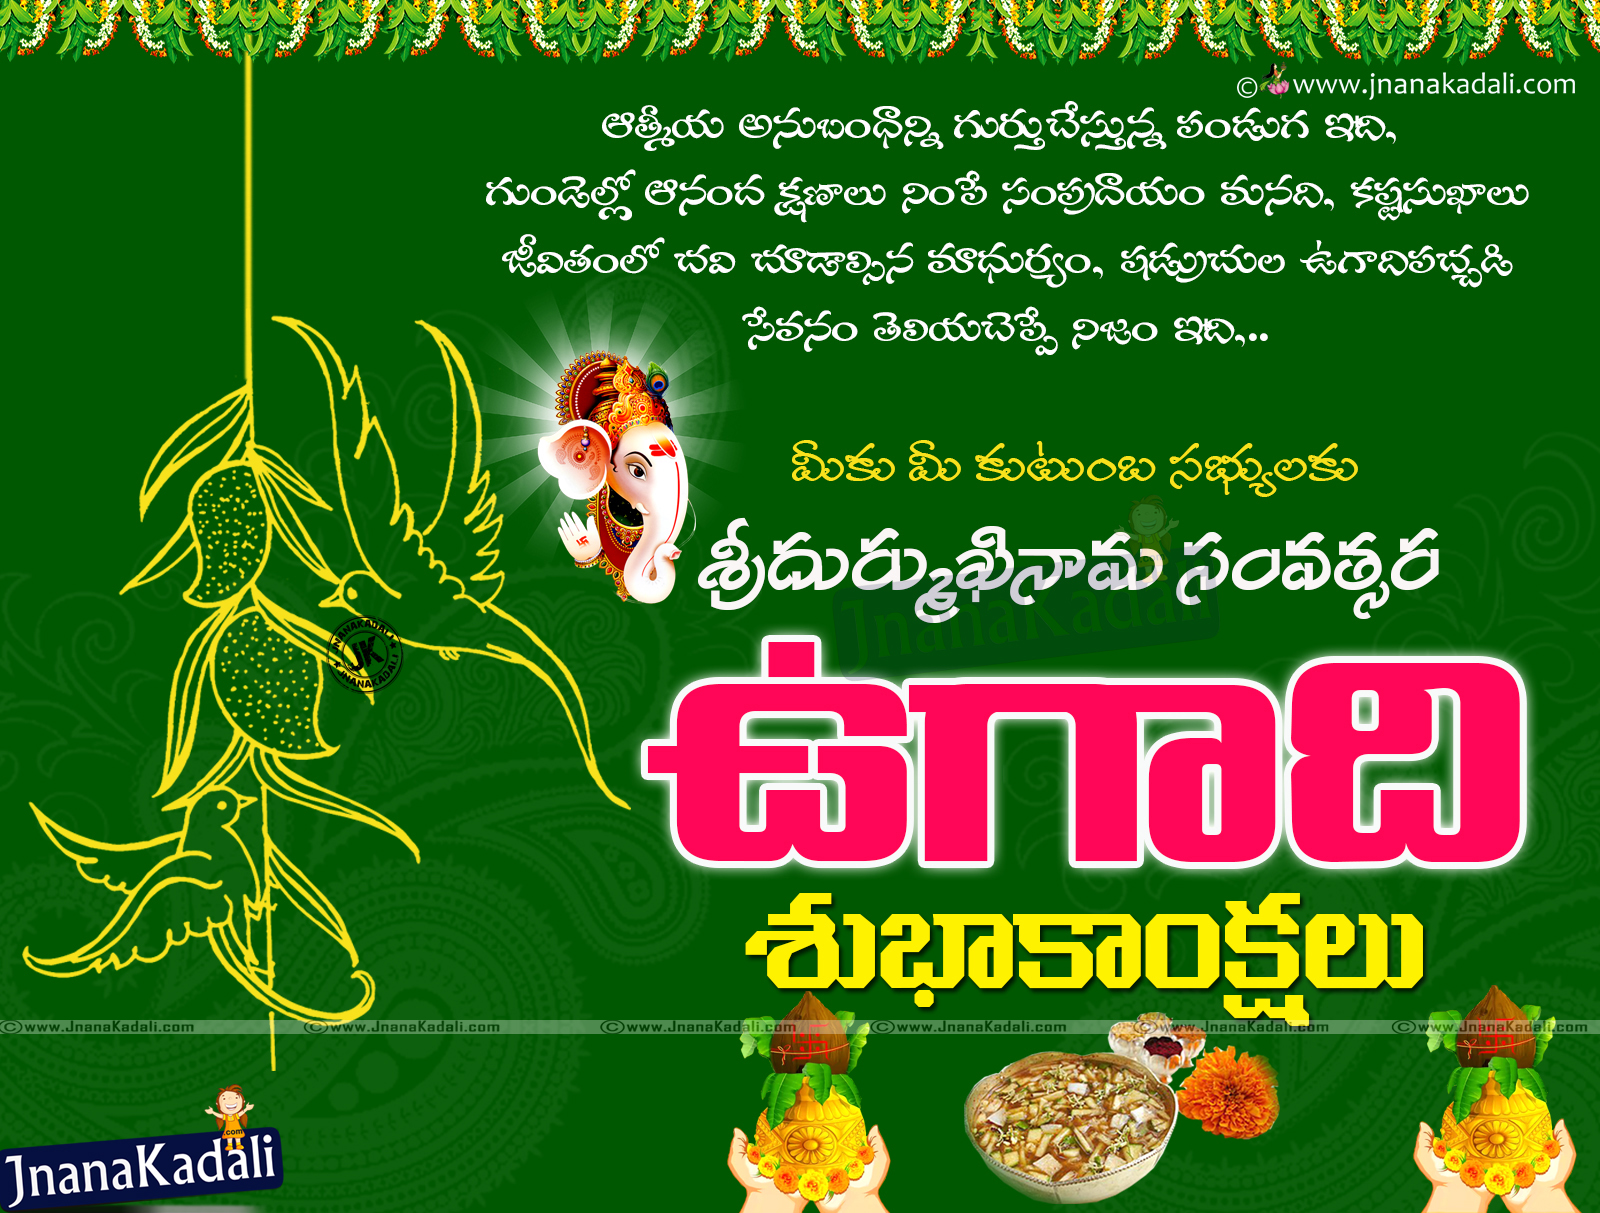 Durmukhi Nama Samvatsara Telugu Ugadi 2016 Quotations Greetings